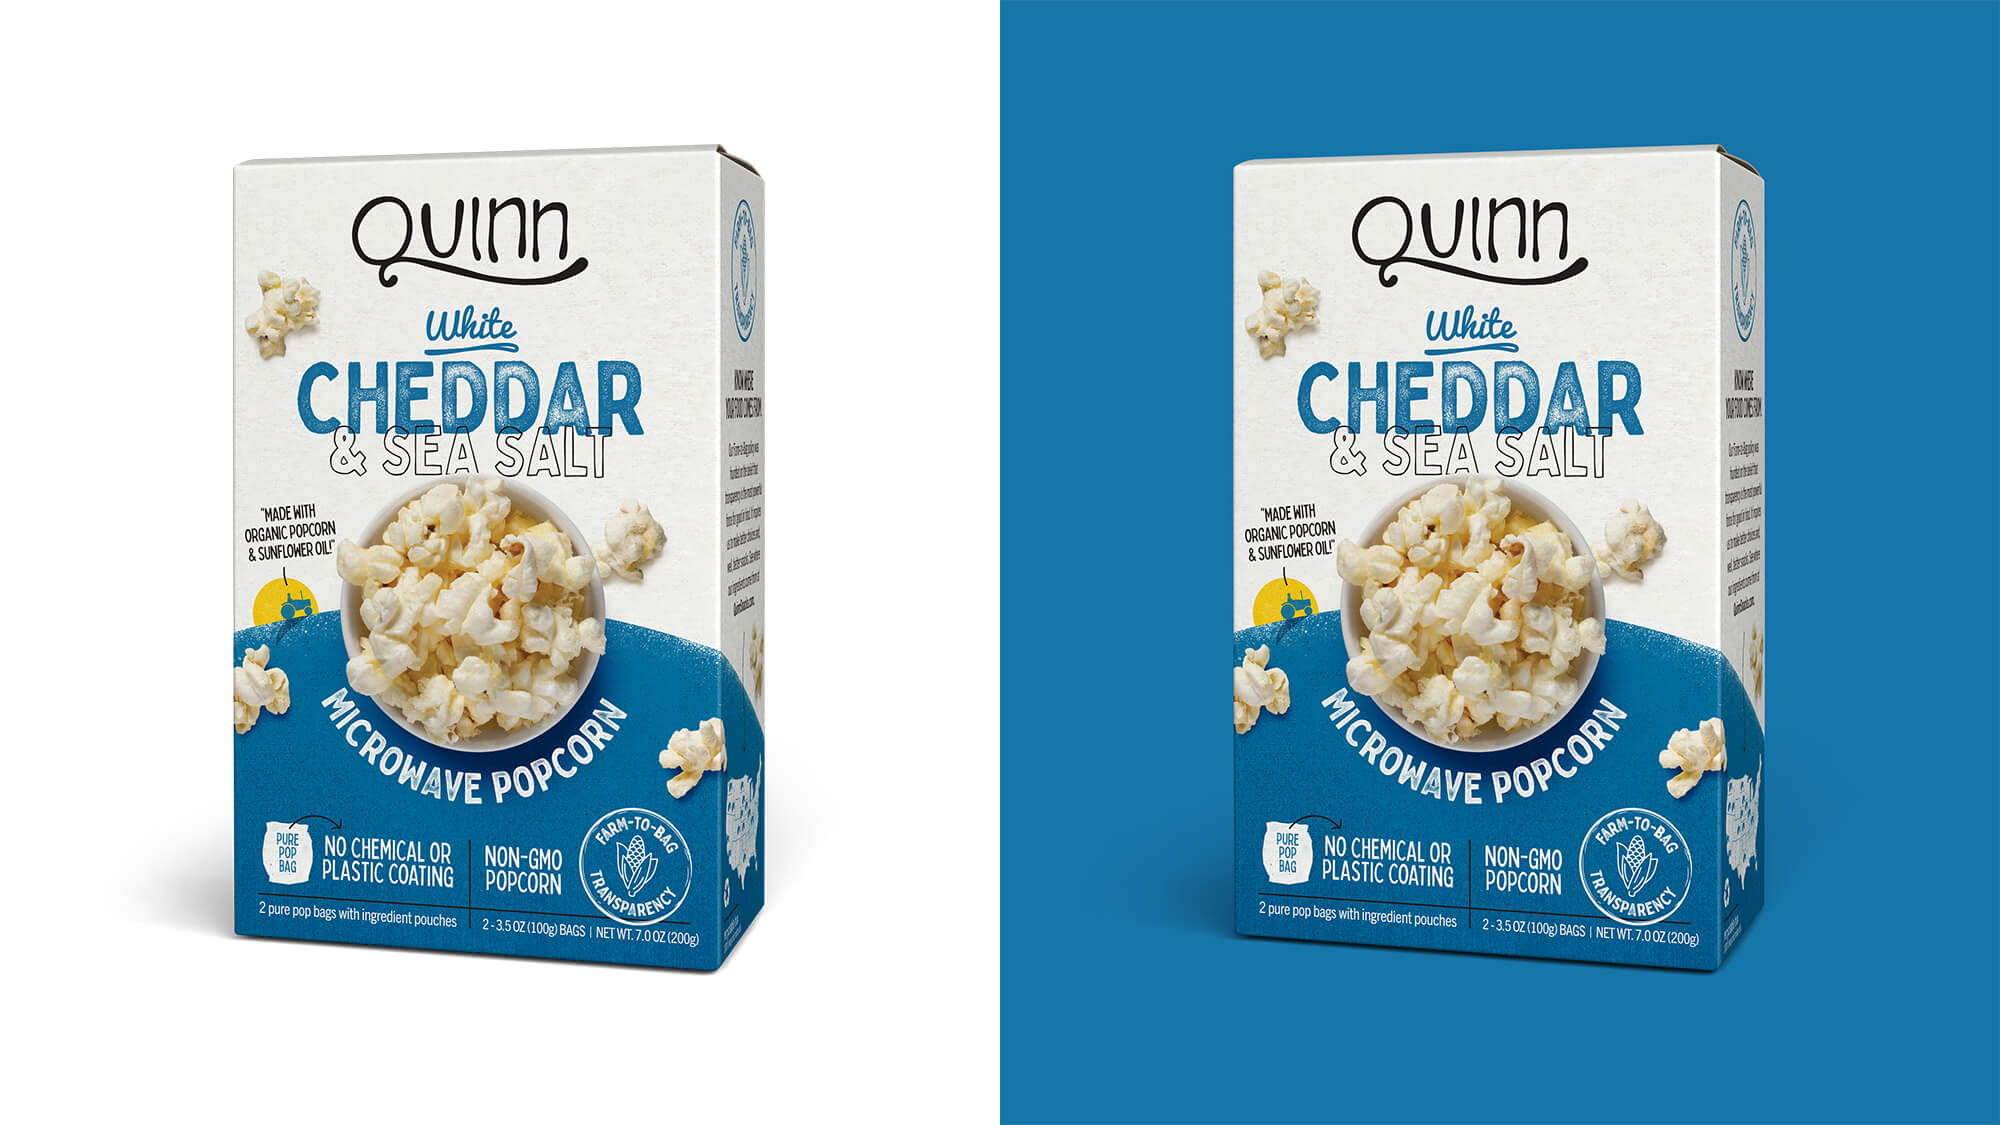 Quinn Popcorn Packaging - White Cheddar & Sea Salt